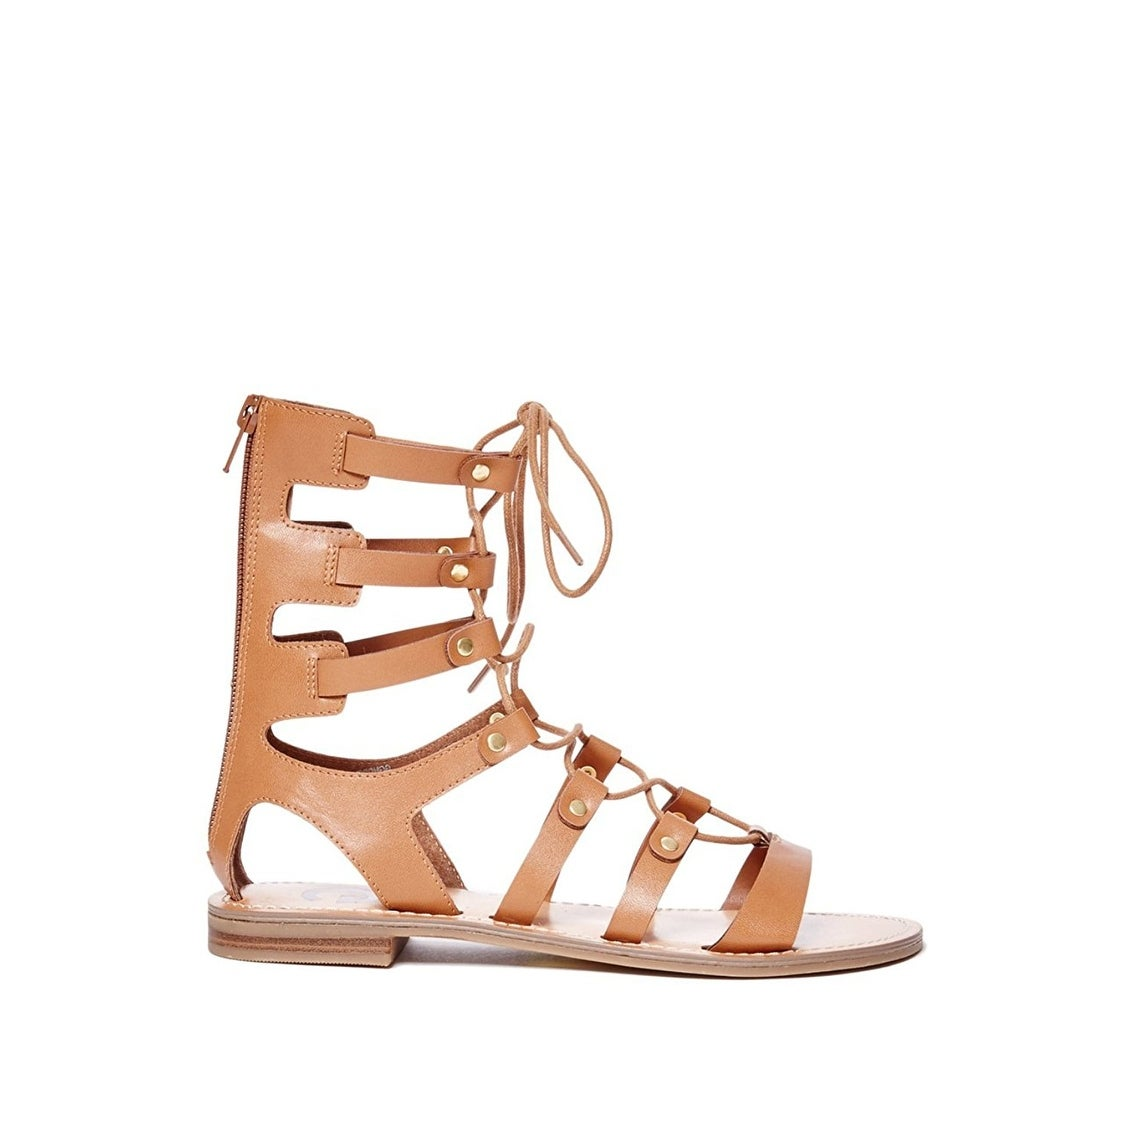 7be8be322aa000 Shop G by Guess Womens Hopey Open Toe Casual Gladiator Sandals - Free  Shipping On Orders Over  45 - Overstock - 17734692